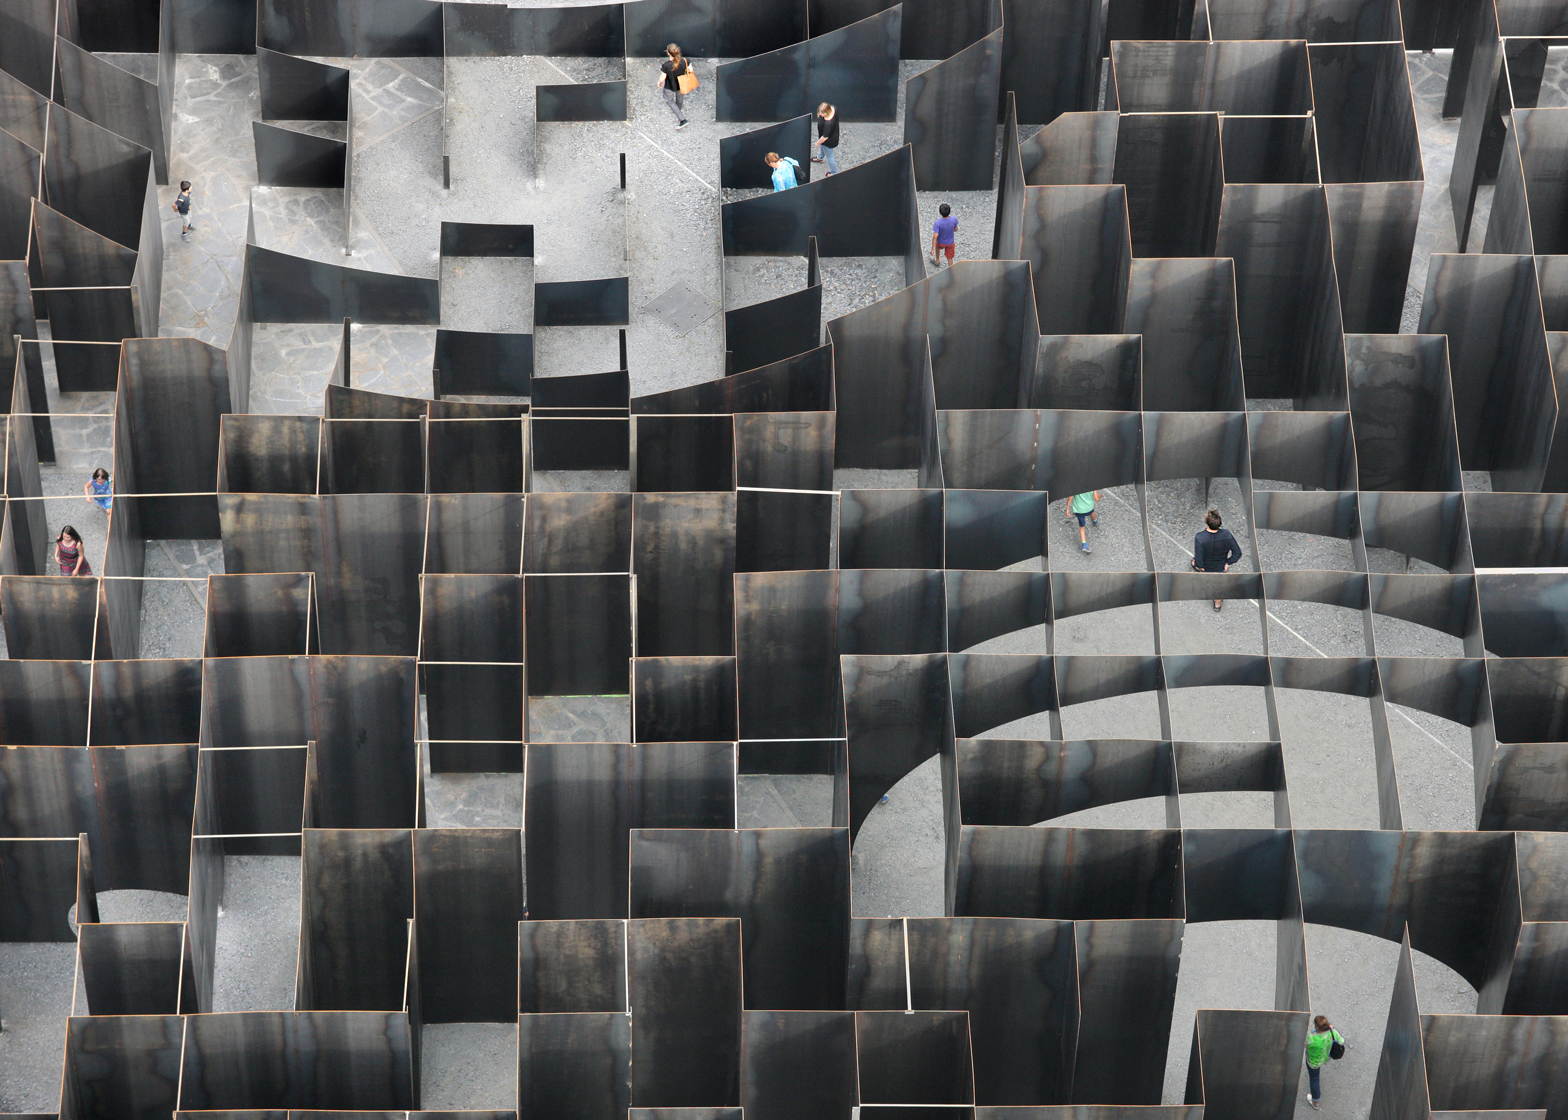 Labyrinth steel maze by Gijs Van Vaerenbergh